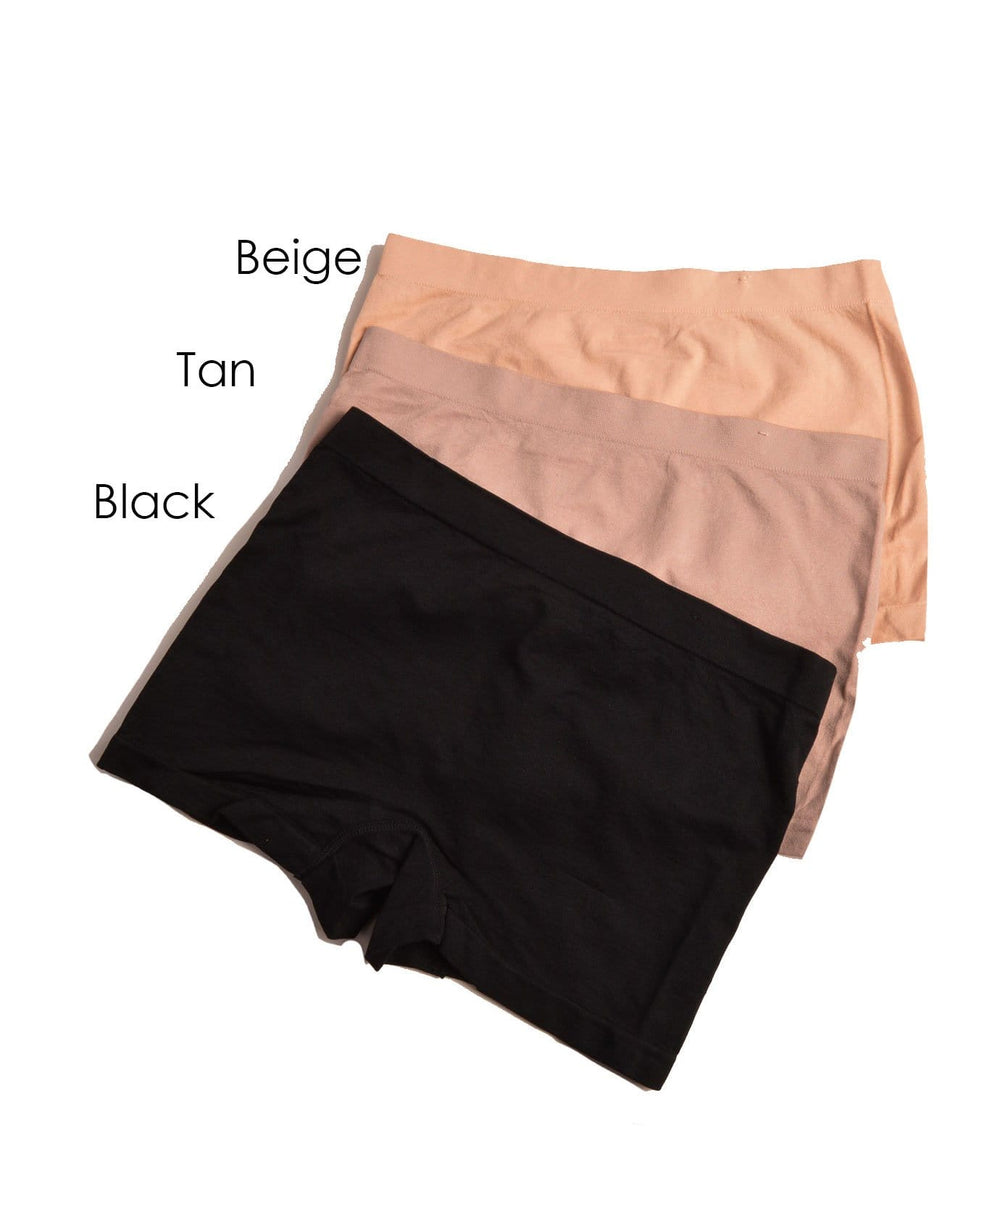 Sofra Boy Shorts